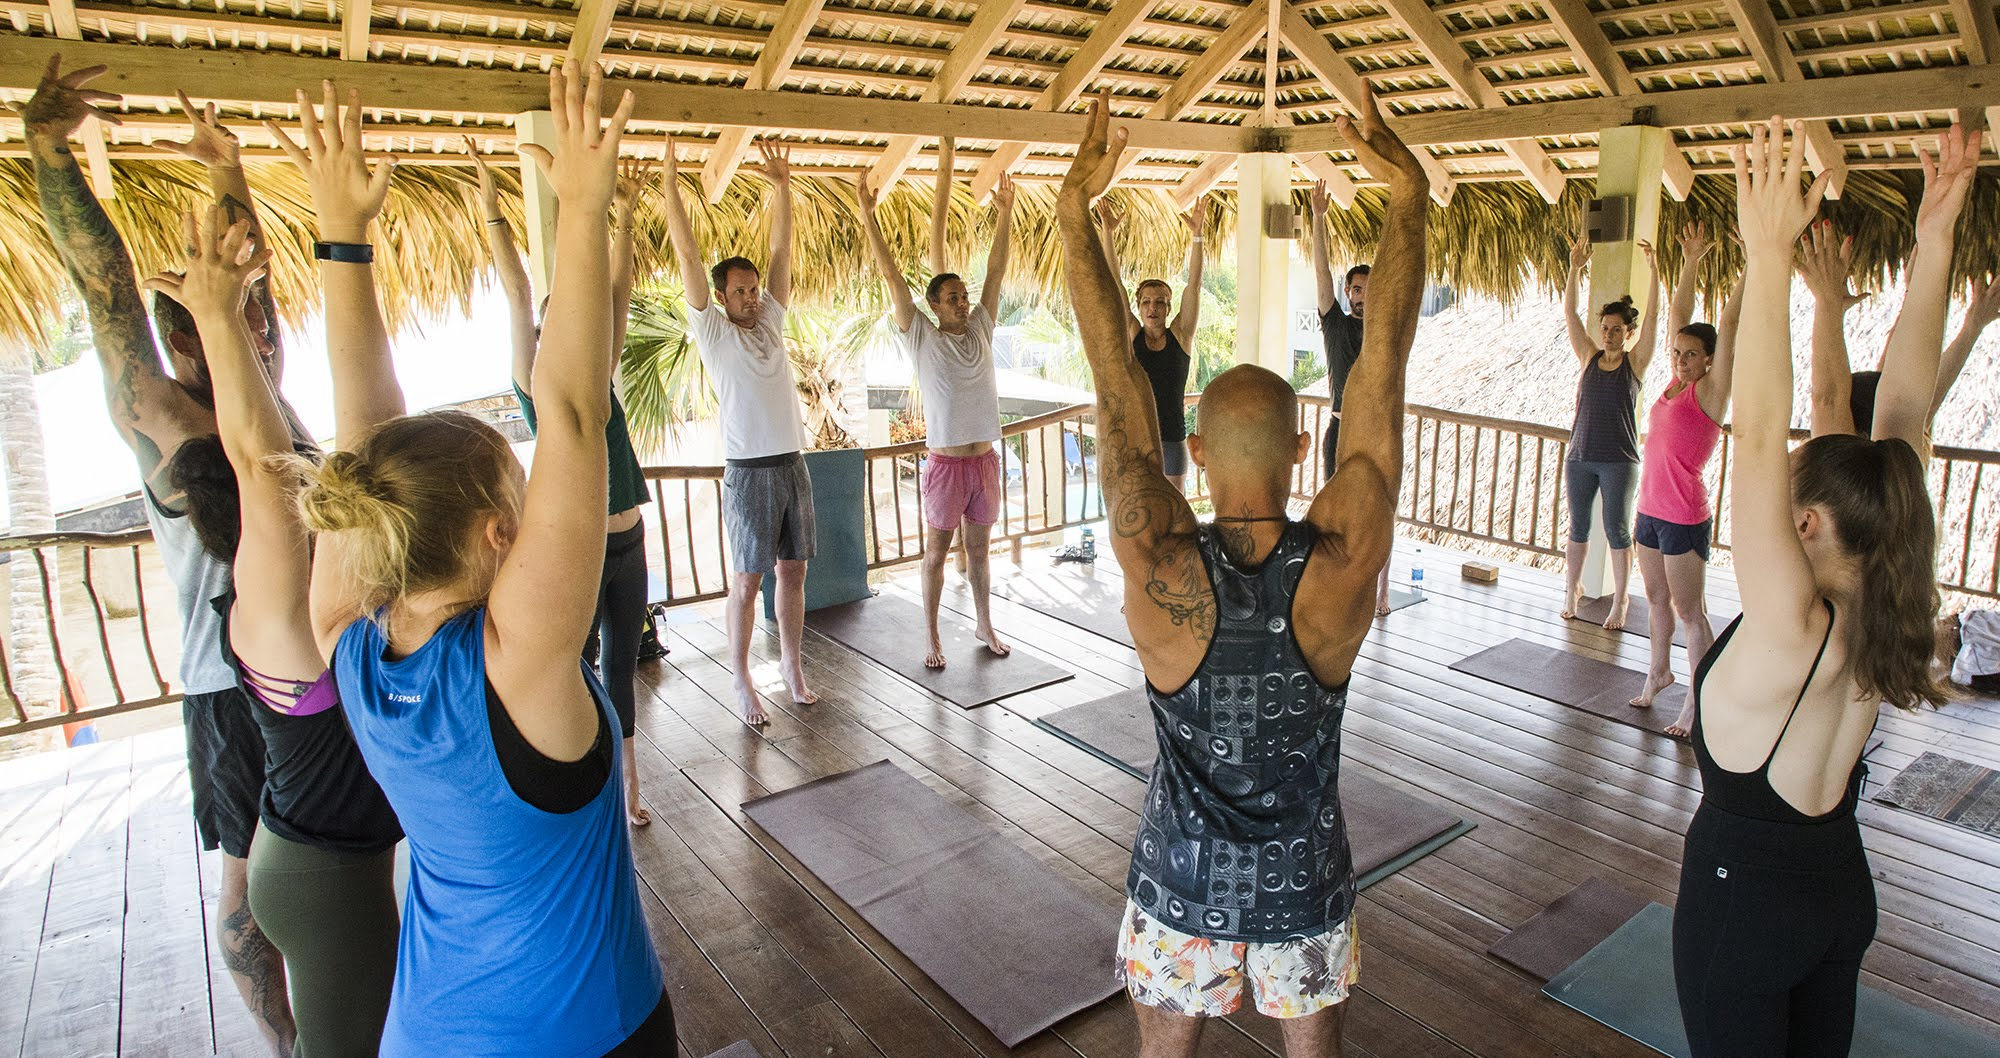 How to Plan a Yoga Retreat People will Love